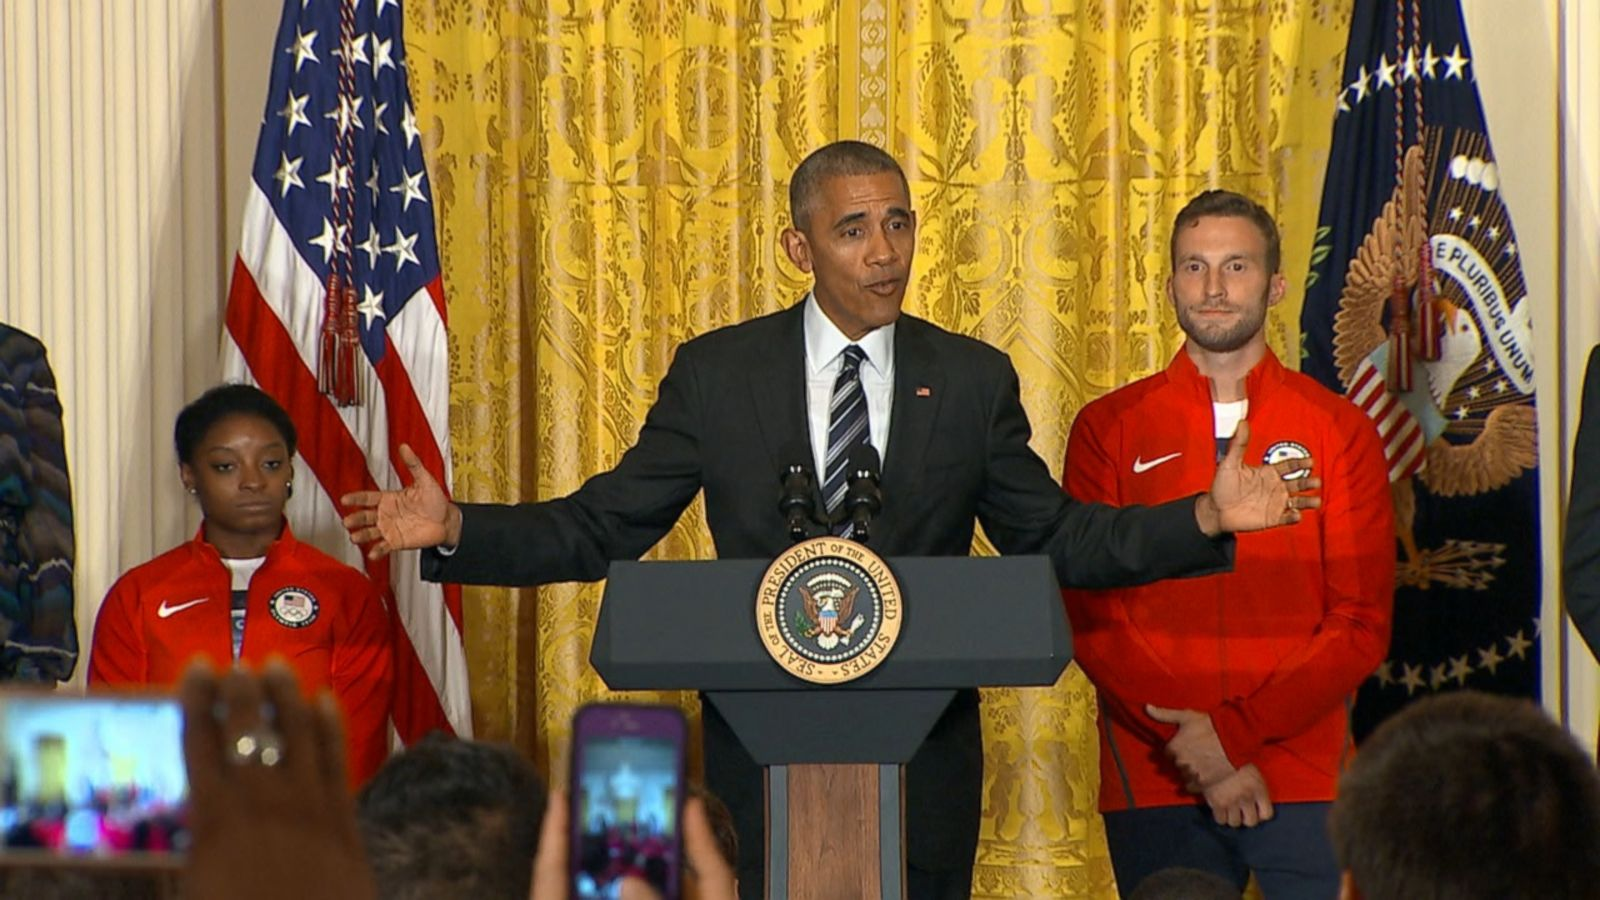 VIDEO: President Obama welcomed Team USA to the White House today, congratulating them not only for their gold, silver and bronze medals but also for their representation of a diverse set of ideals that inspired Americans during the Rio Summer Games.